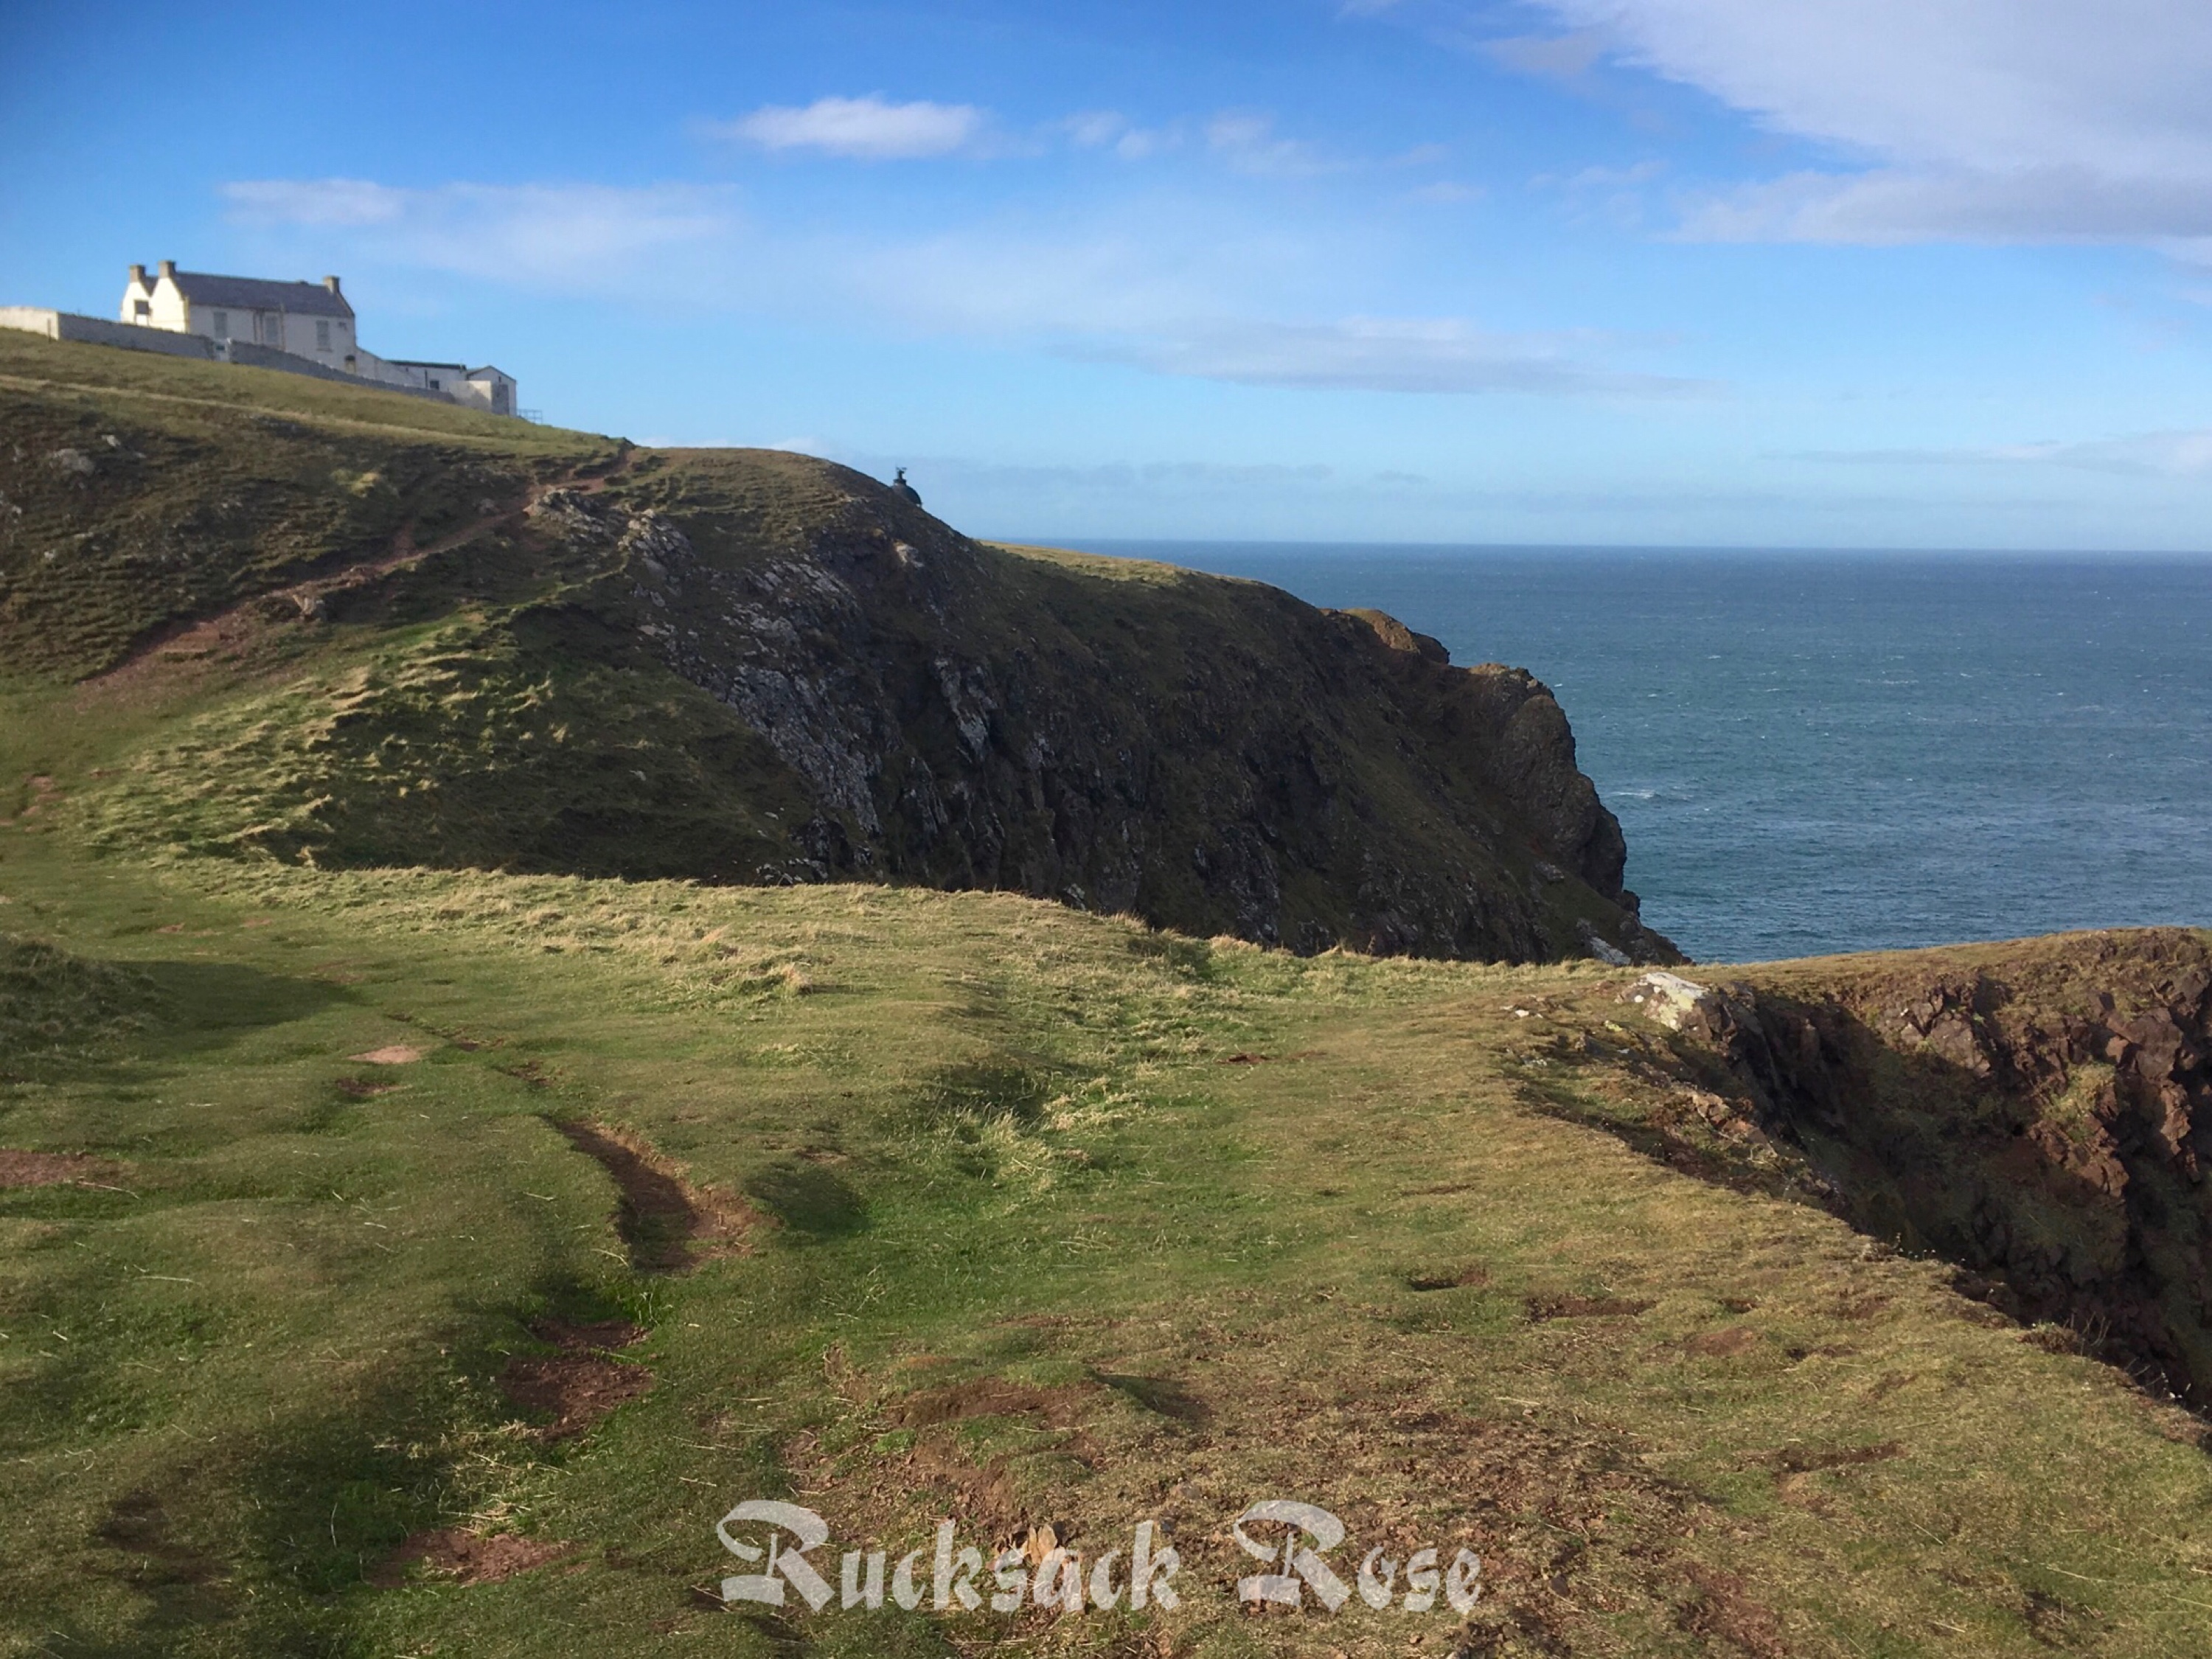 St Abb's Head nature reserve